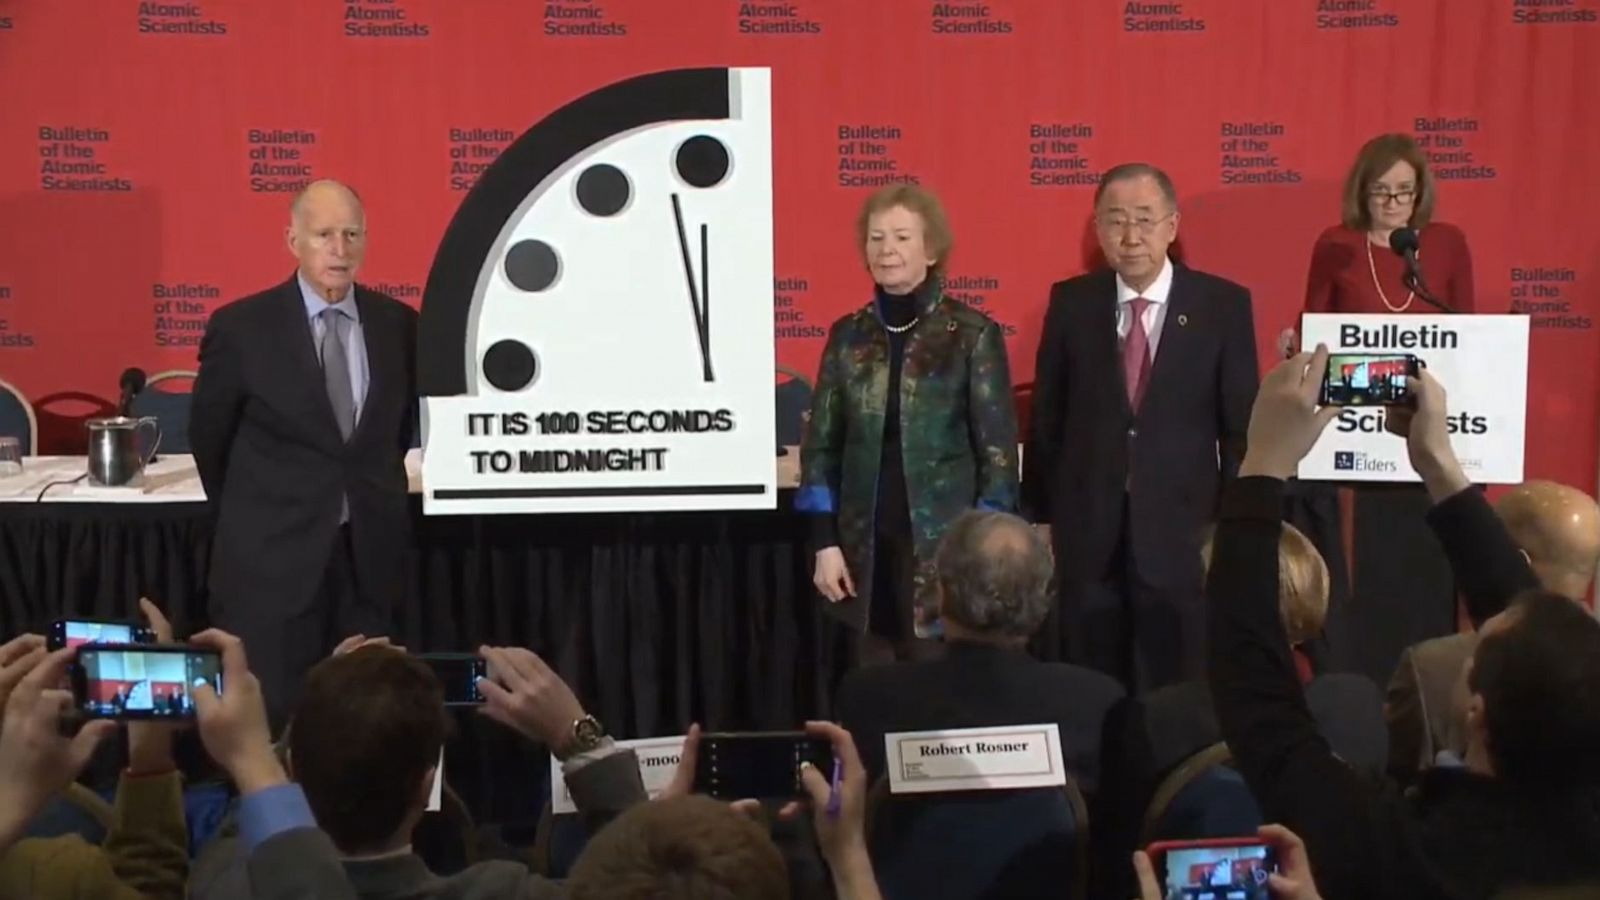 Doomsday Clock Moved 20 Seconds Closer To Catastrophe Abc News